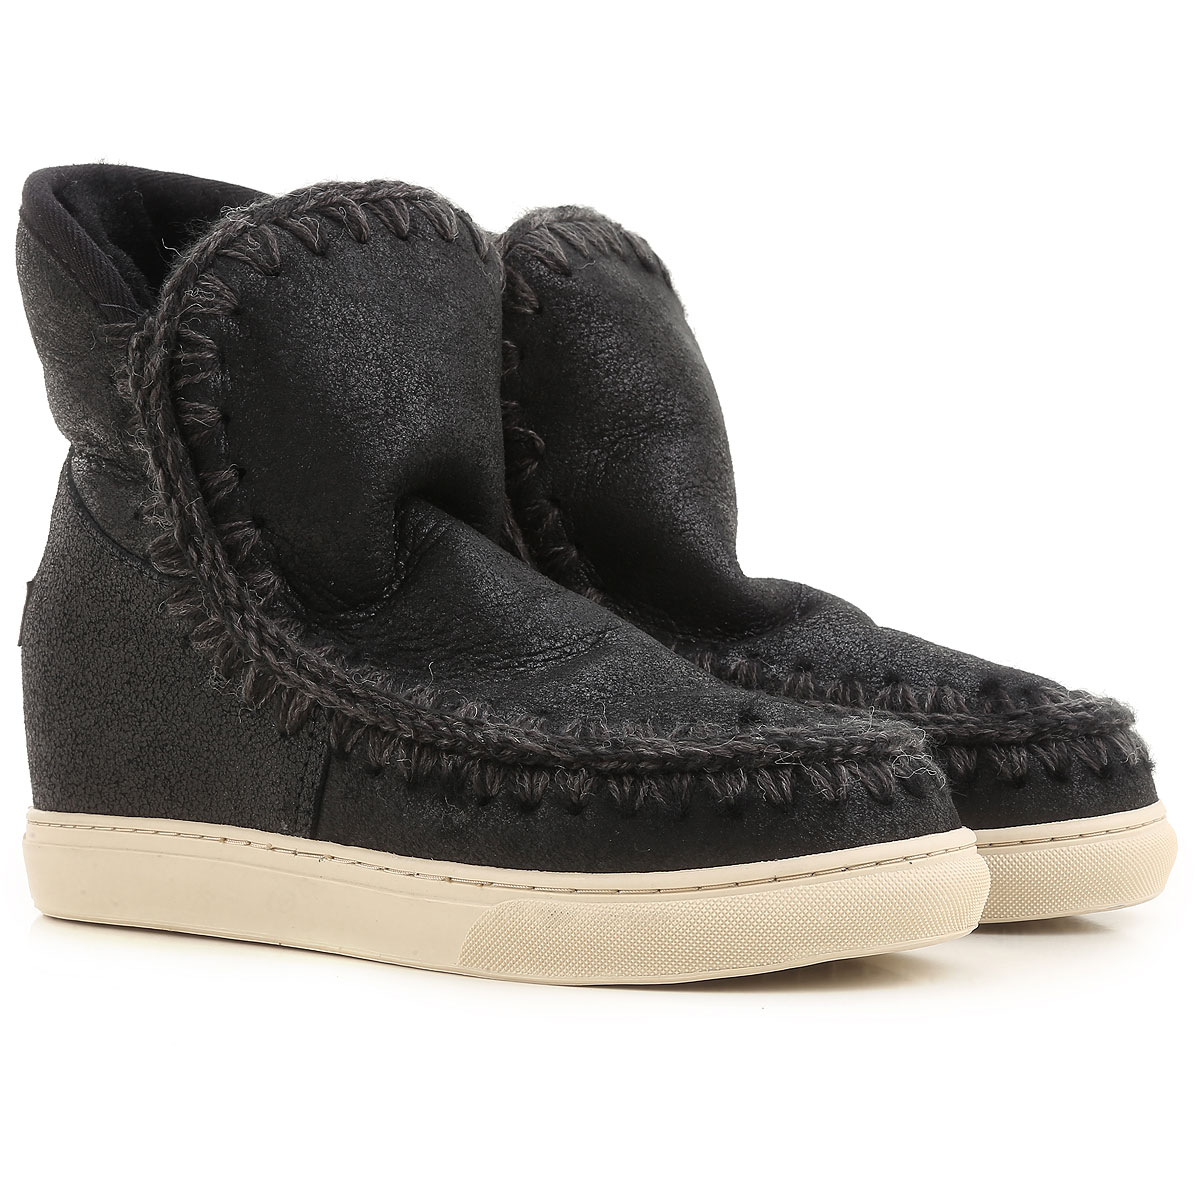 Image of Mou Boots for Women, Booties, Black, Leather, 2017, EUR 36 - UK 3 - USA 5.5 EUR 37 - UK 4 - USA 6.5 EUR 38 - UK 5 - USA 7.5